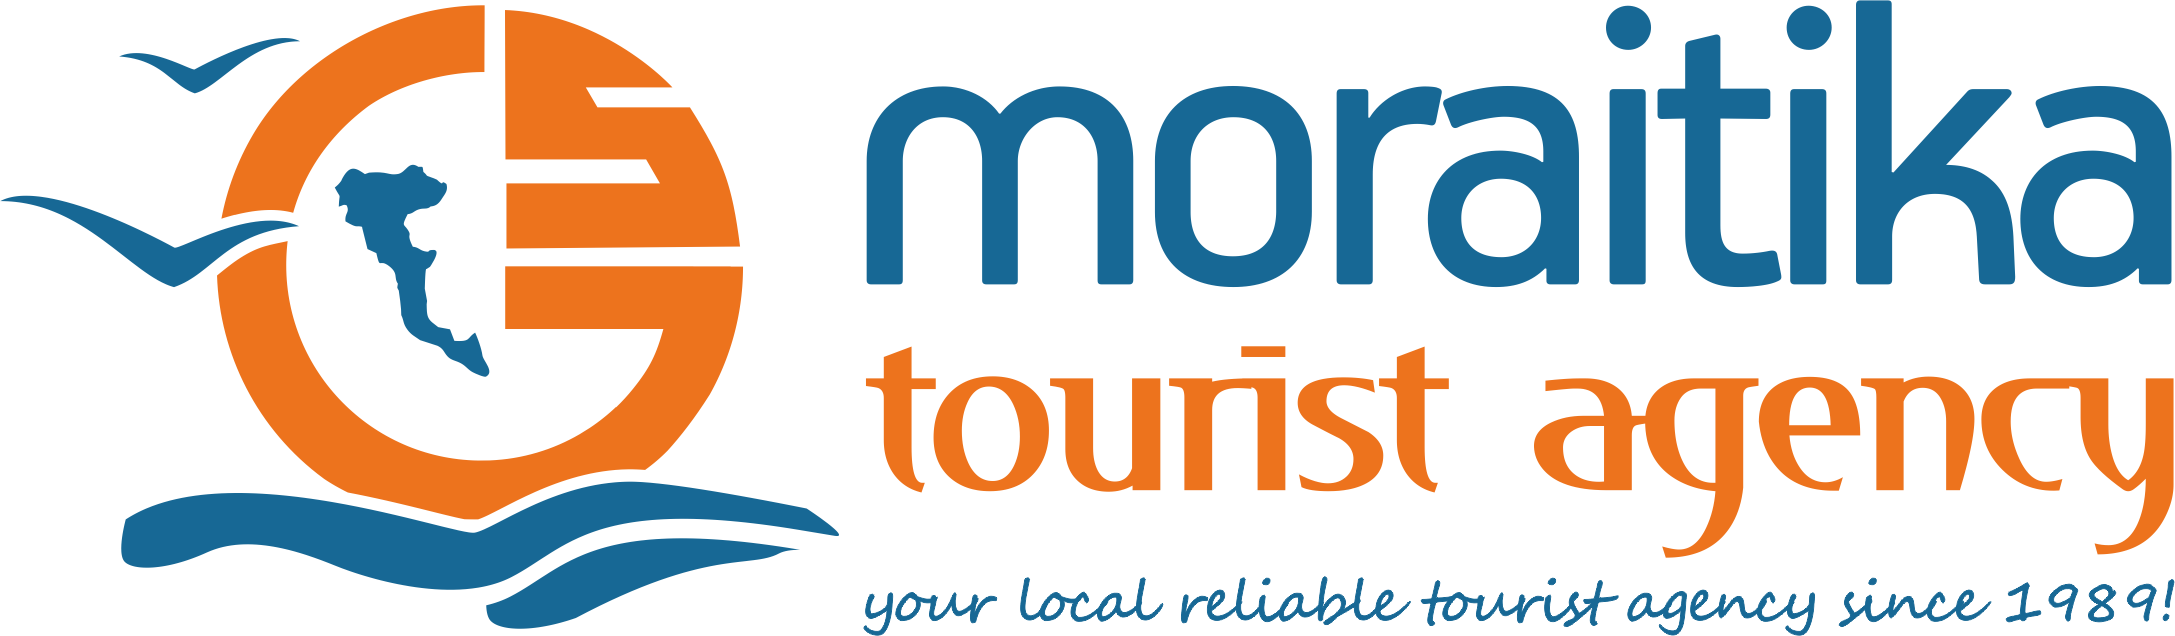 Moraitika Tourist Agency